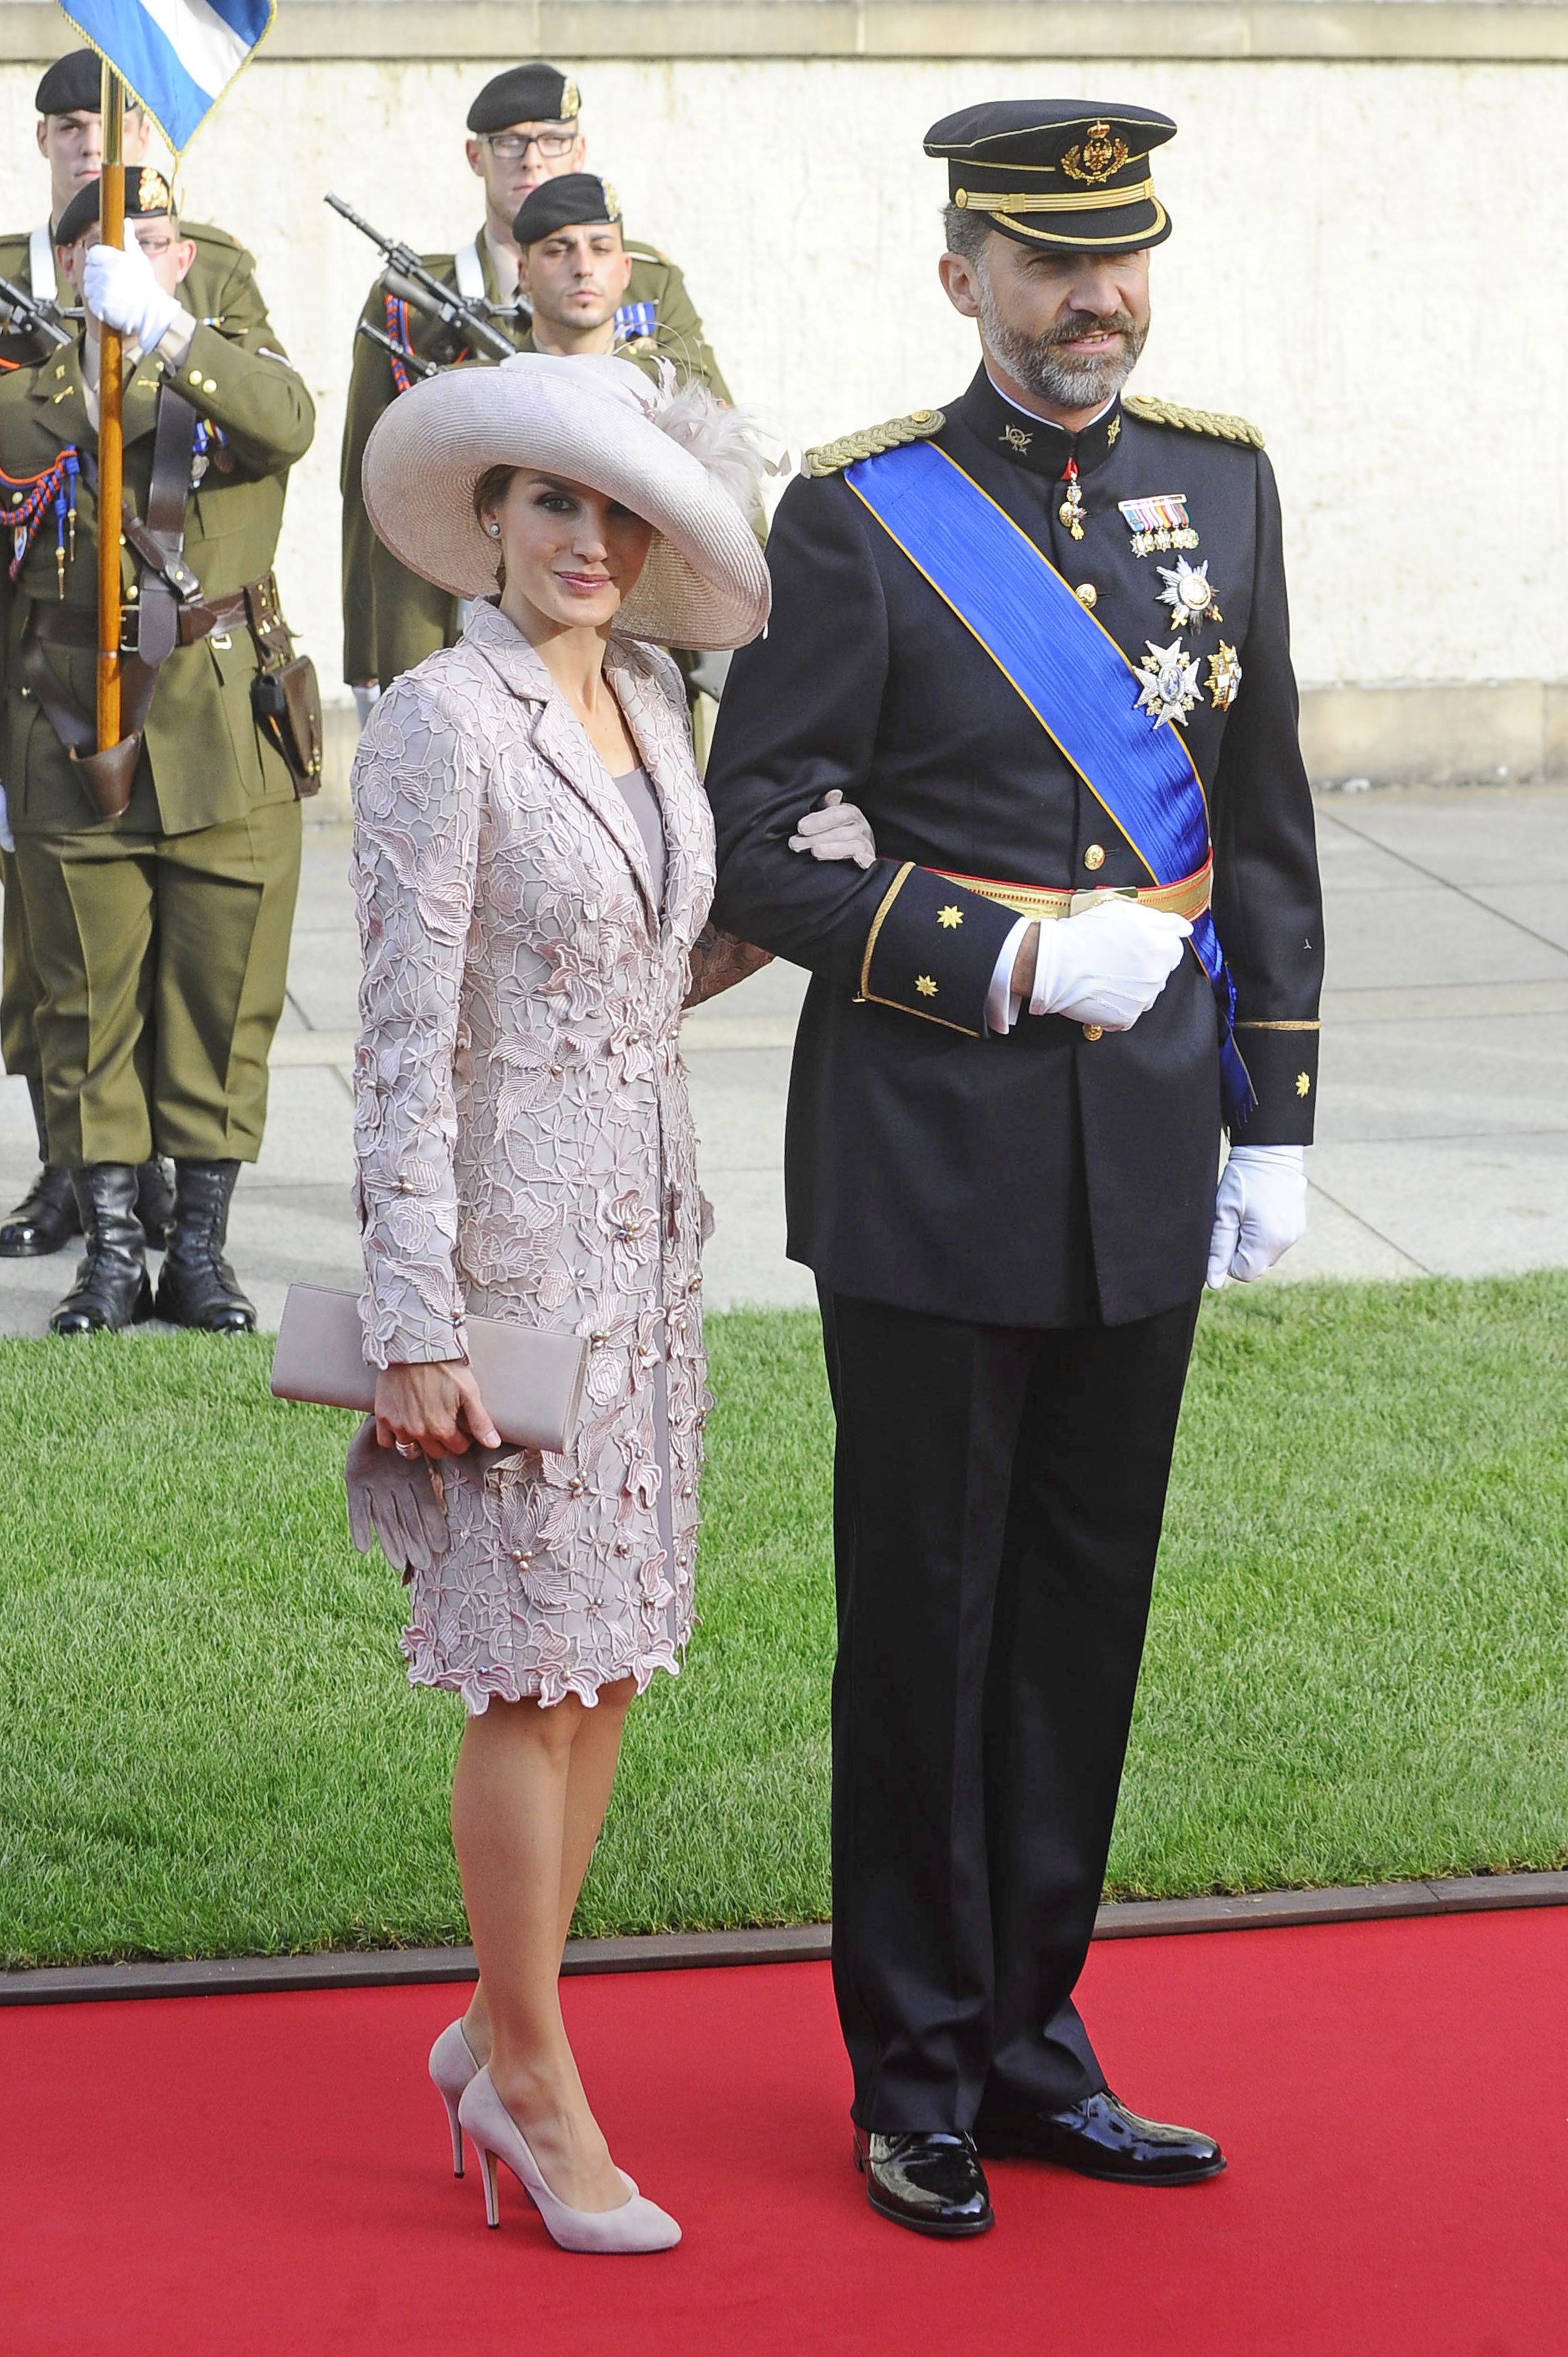 HRH Hereditary Grand Duke Guillaume married the Belgian Countess Stéphanie de Lannoy in a religious ceremony on Saturday October 20, 2012 and Don Felipe and Doña Letizia represented the Spanish Royal House.